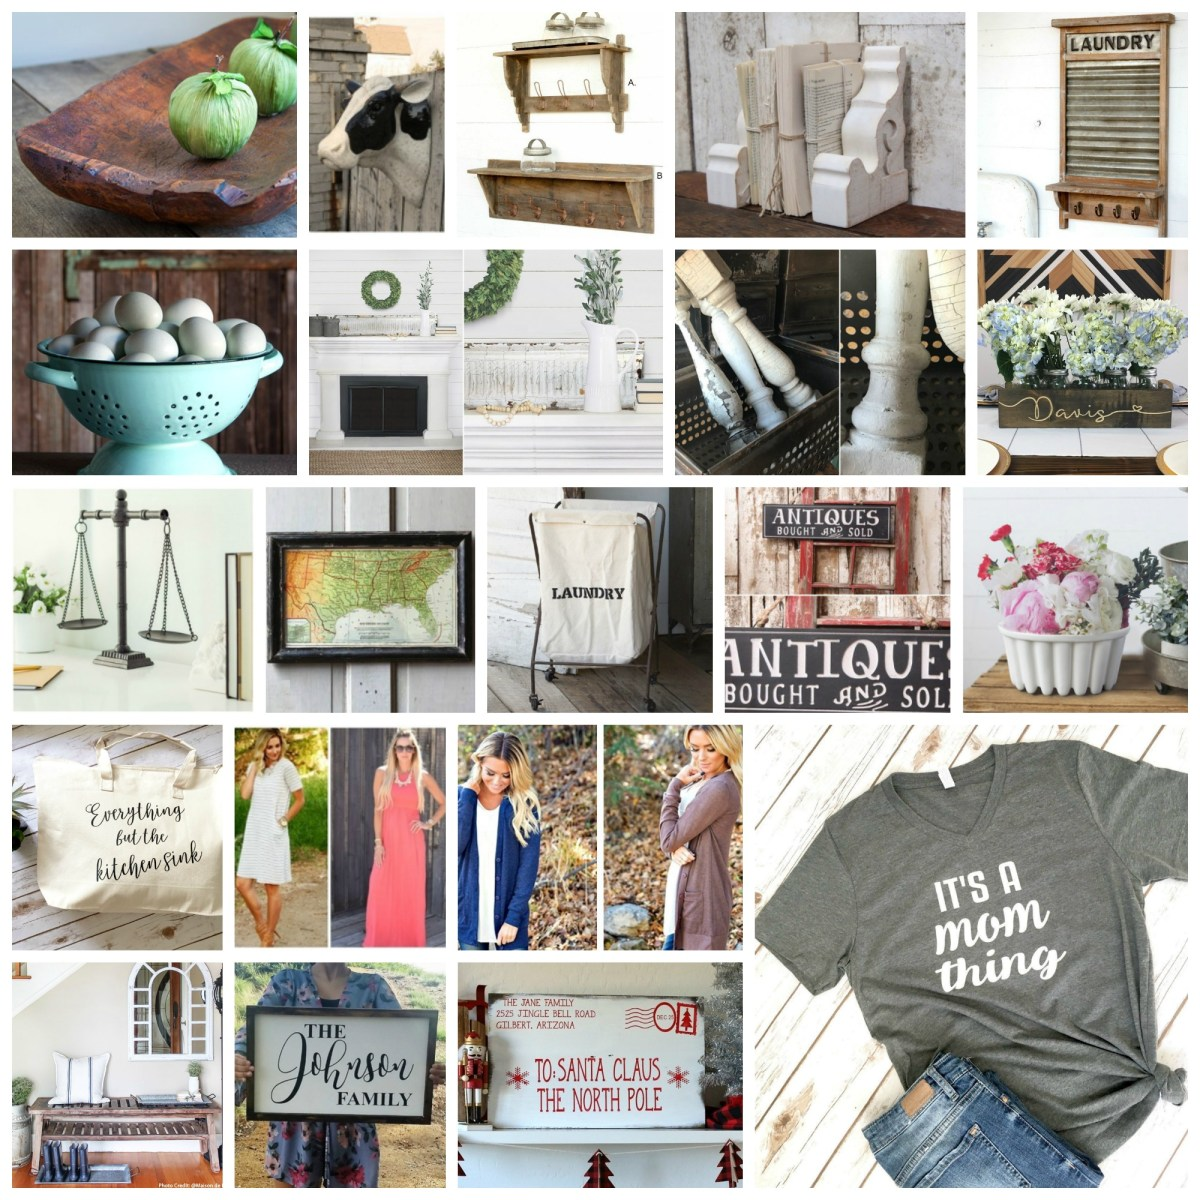 Home Decor Daily Deals: Monday, July 31, 2017